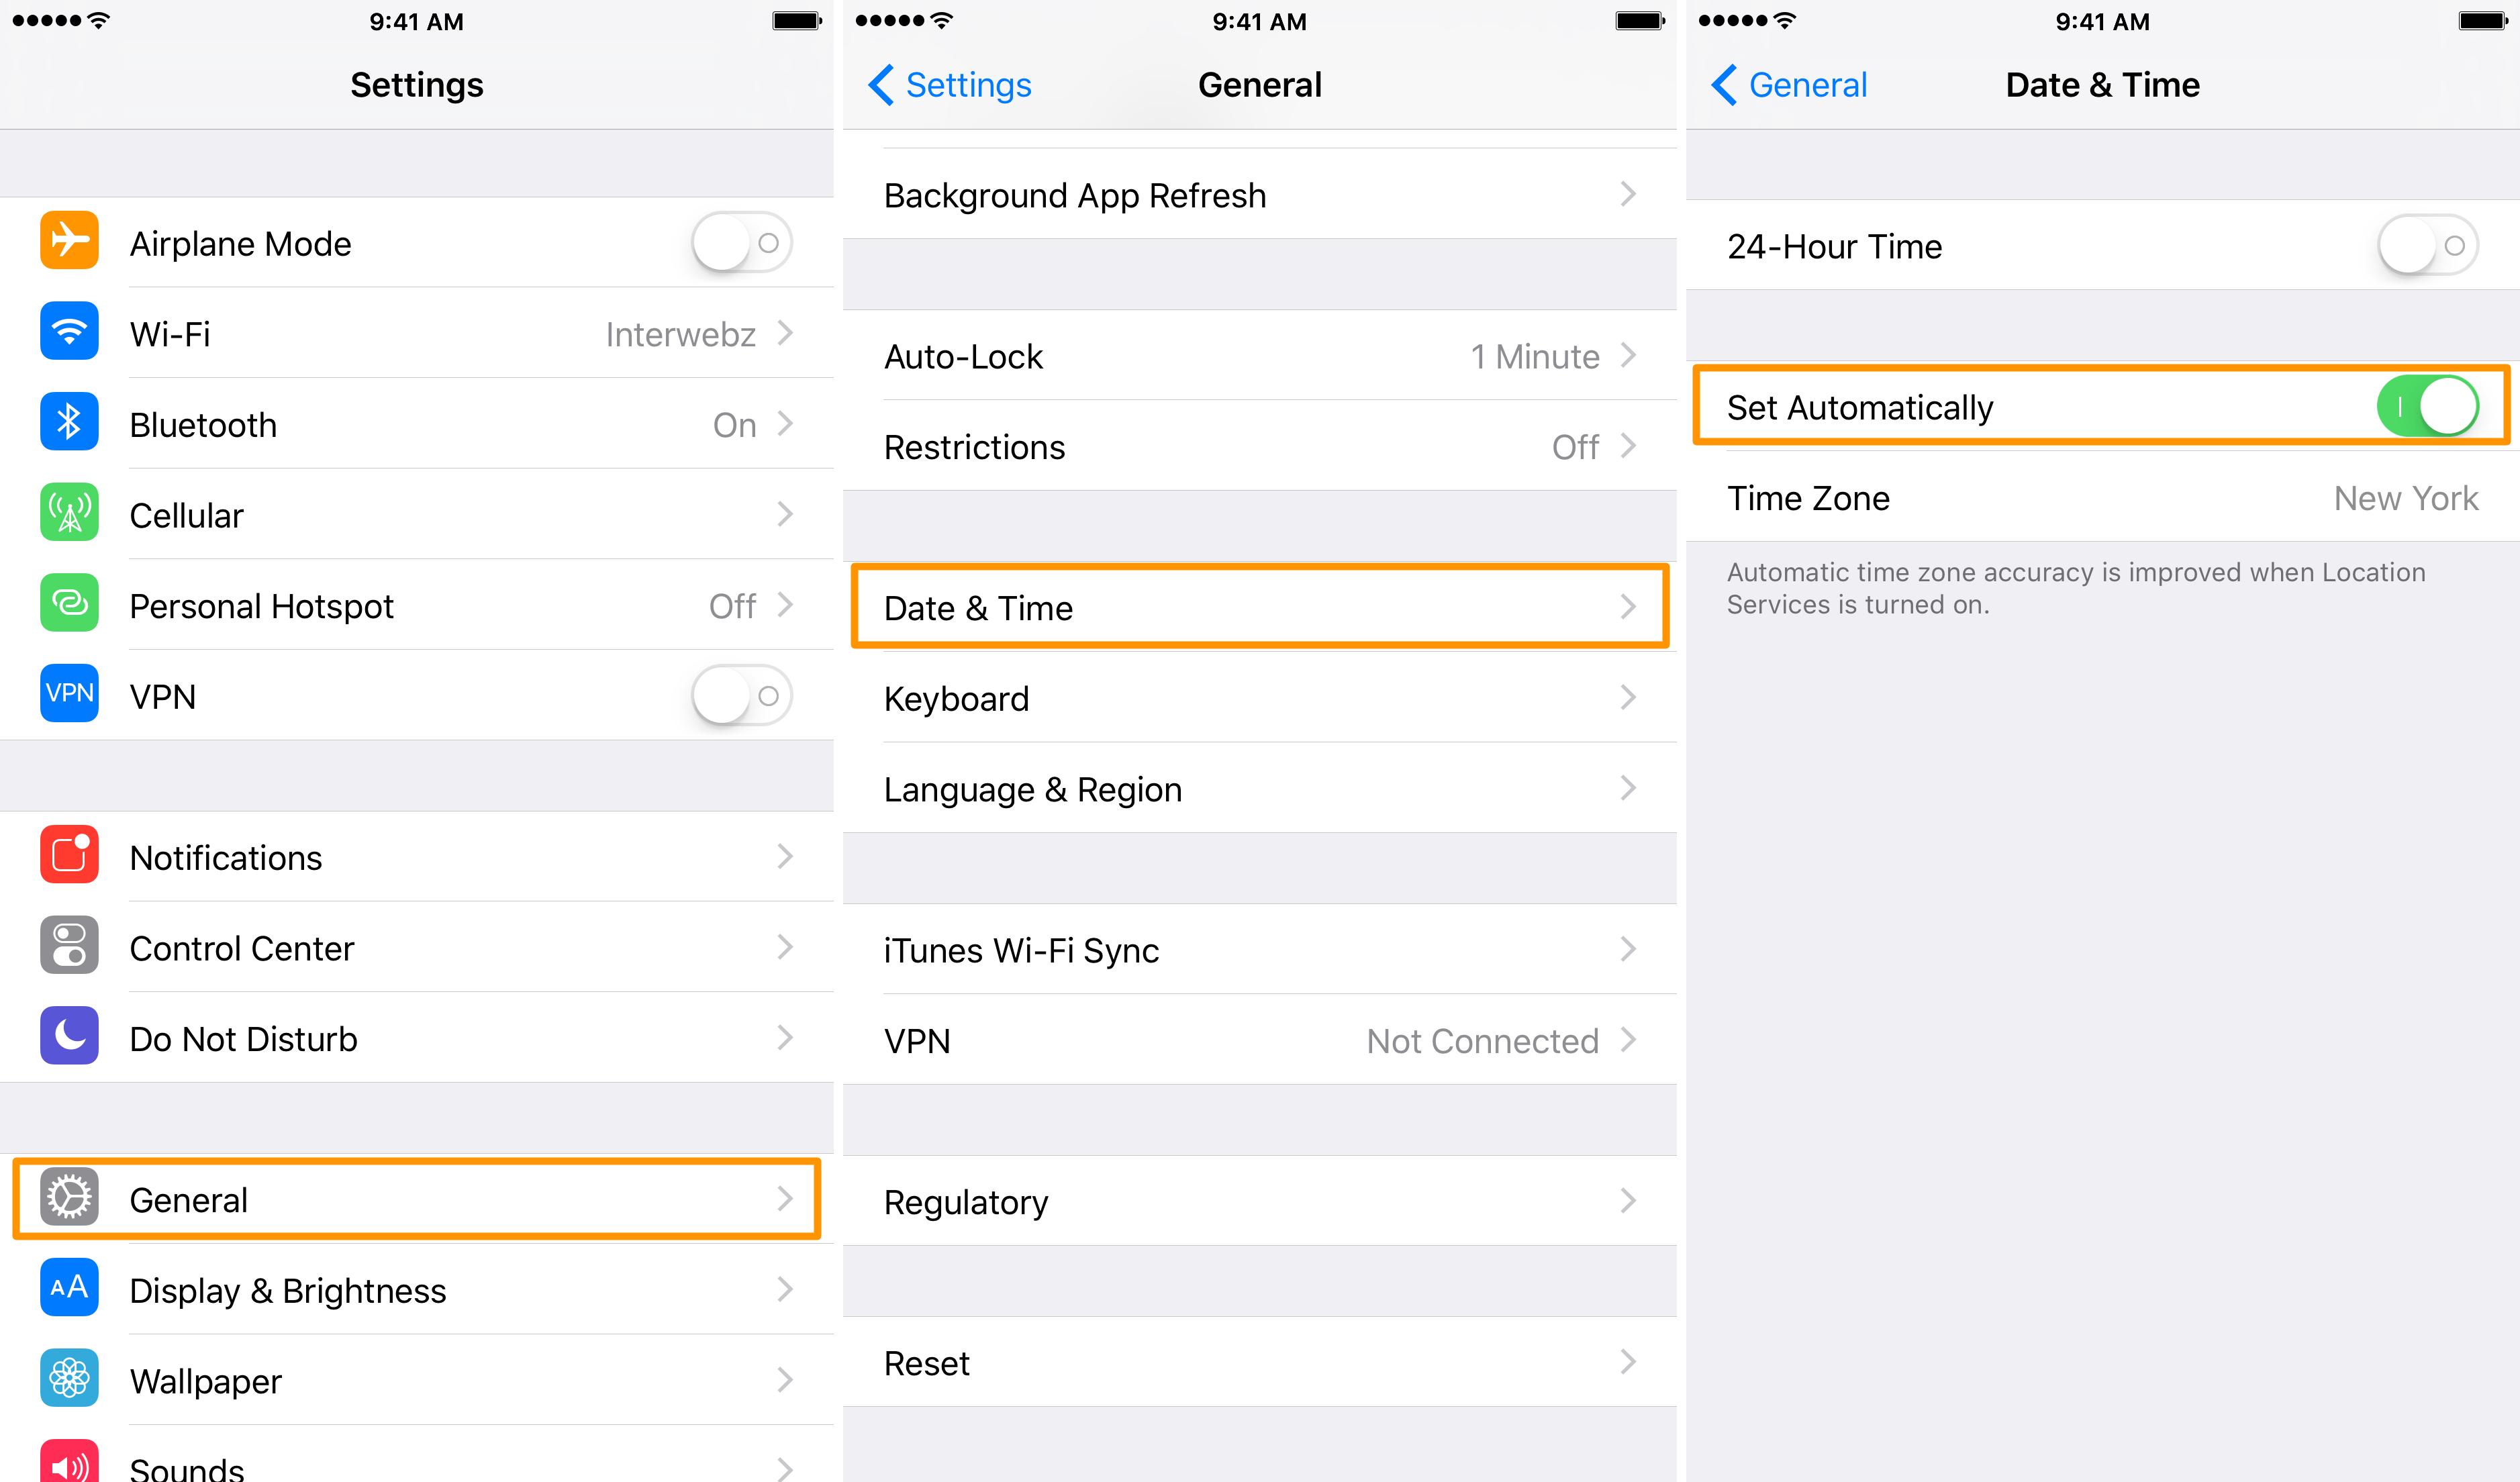 Letting iOS handle time automatically